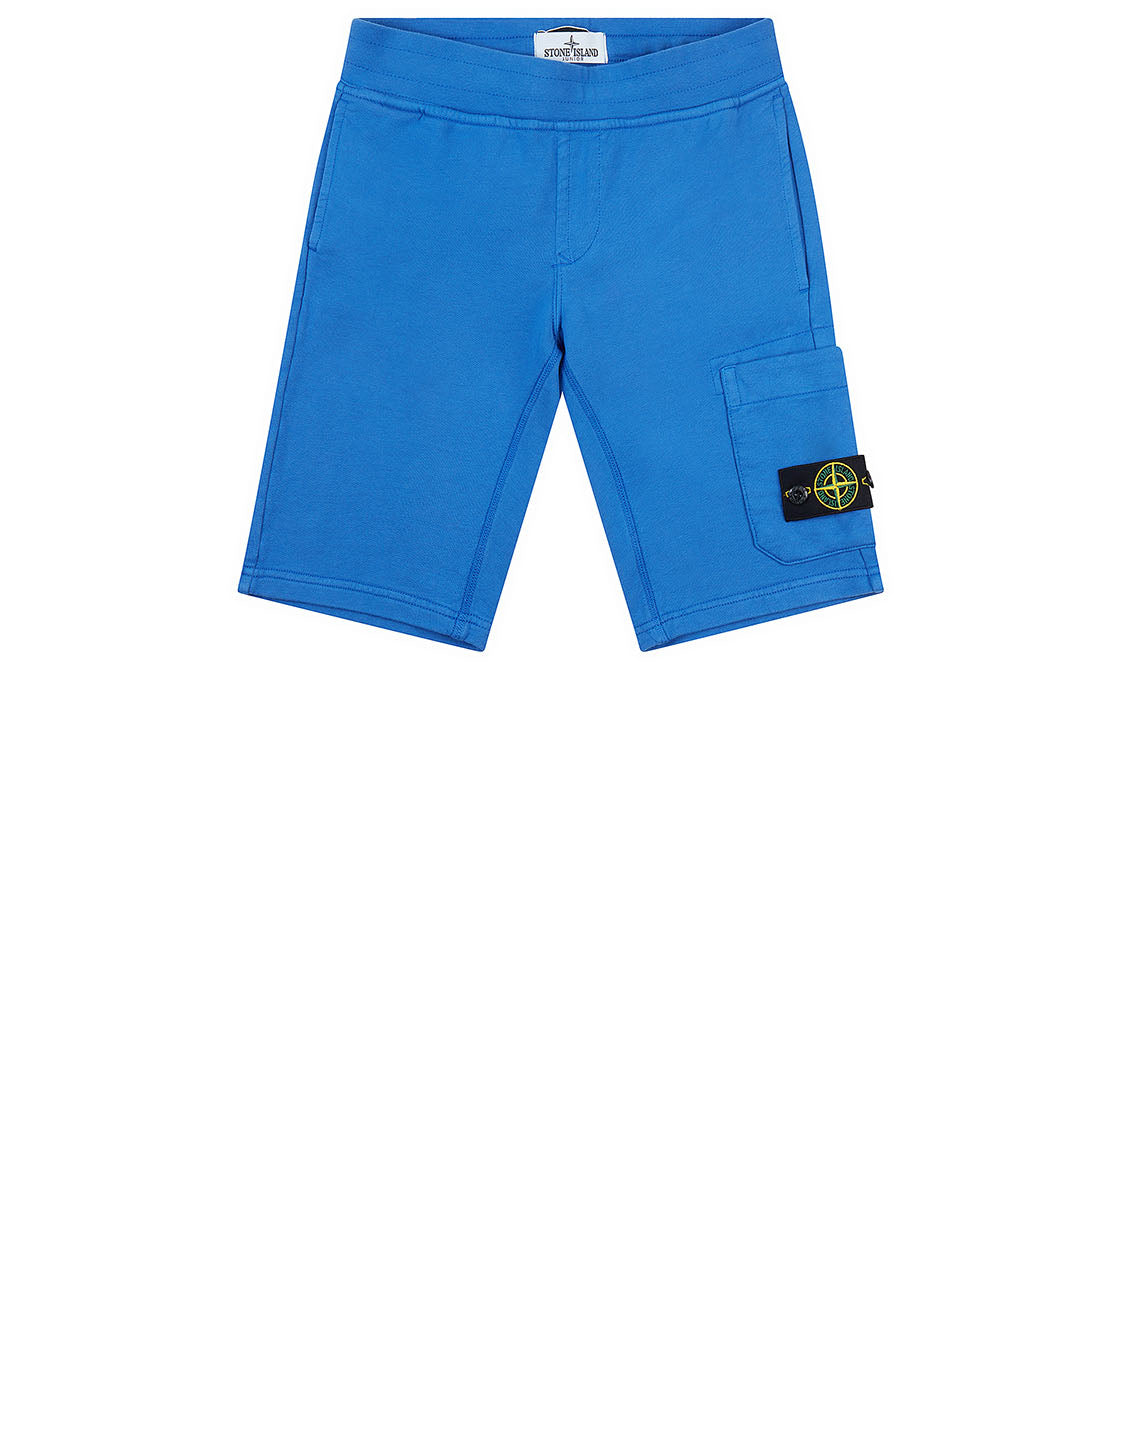 60740 Fleece Bermuda Shorts in Periwinkle